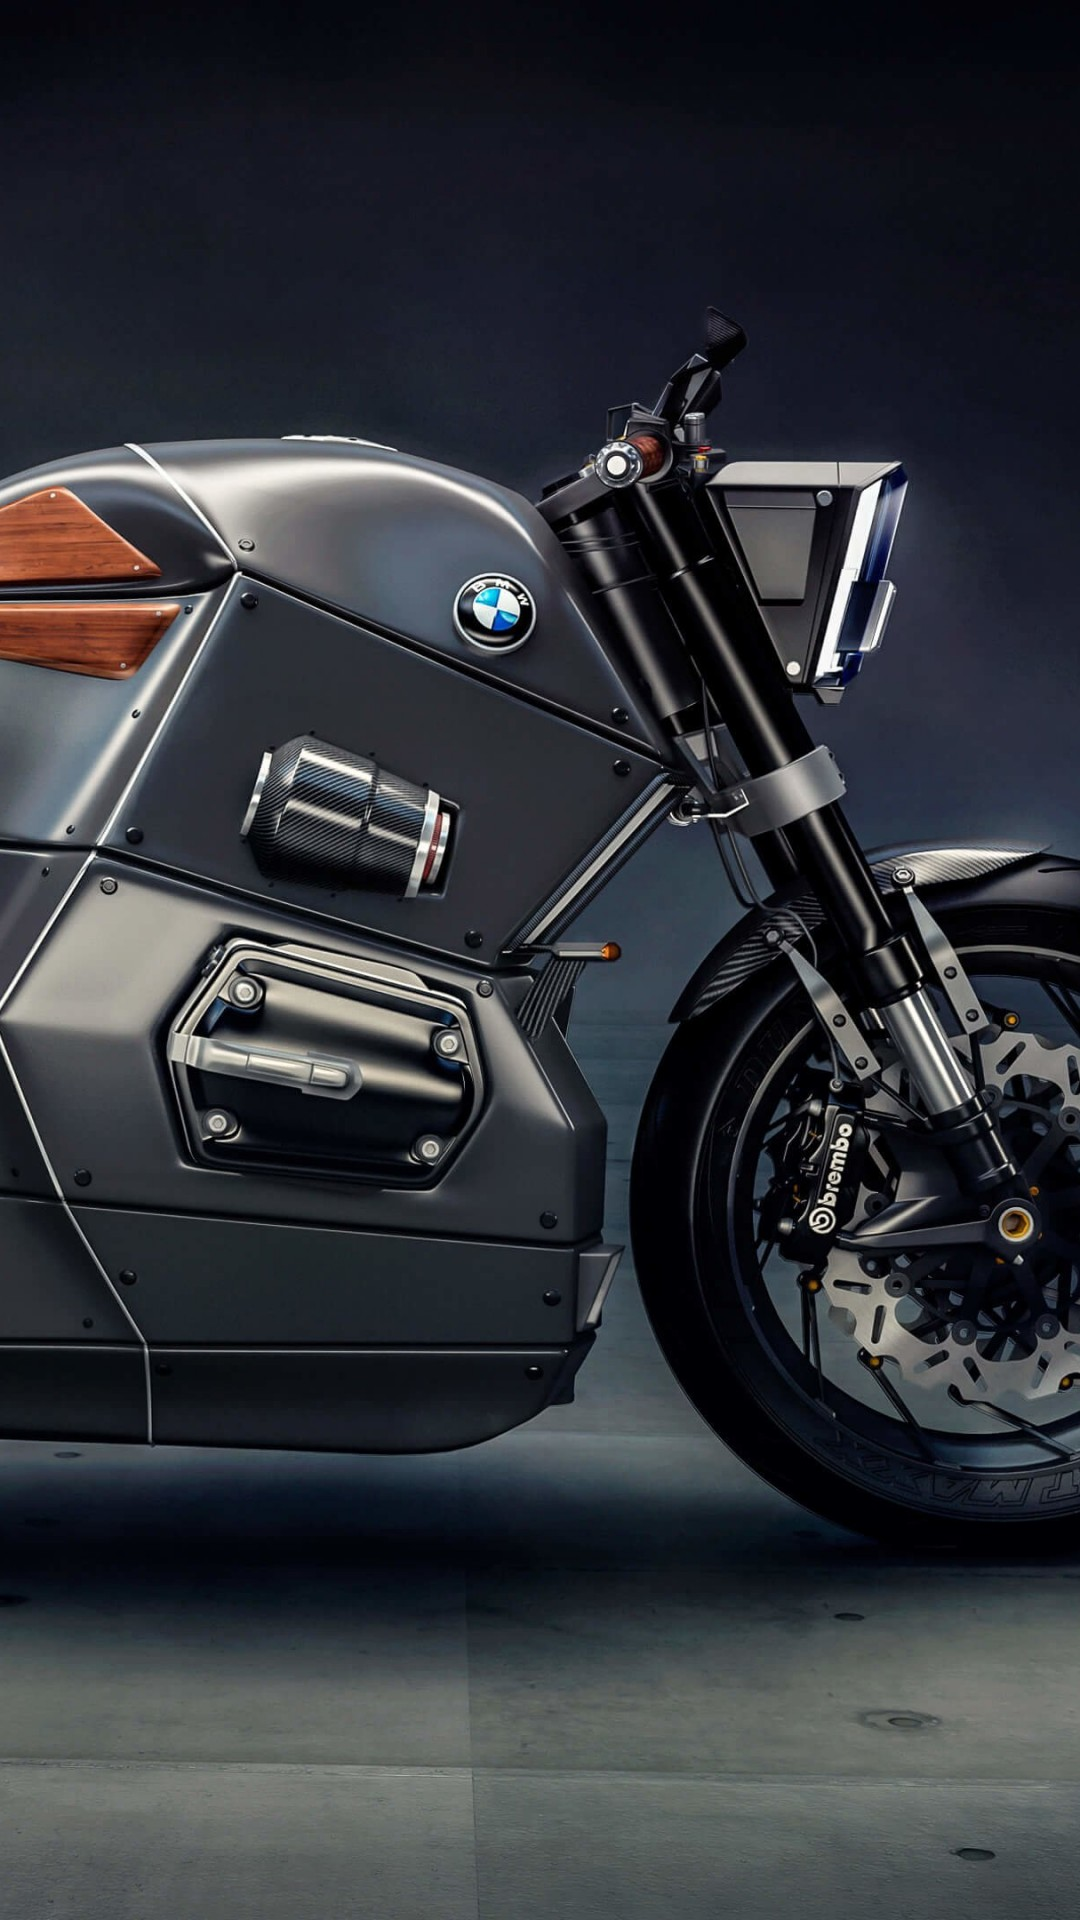 BMW M Bike Concept Wallpaper for SAMSUNG Galaxy S5